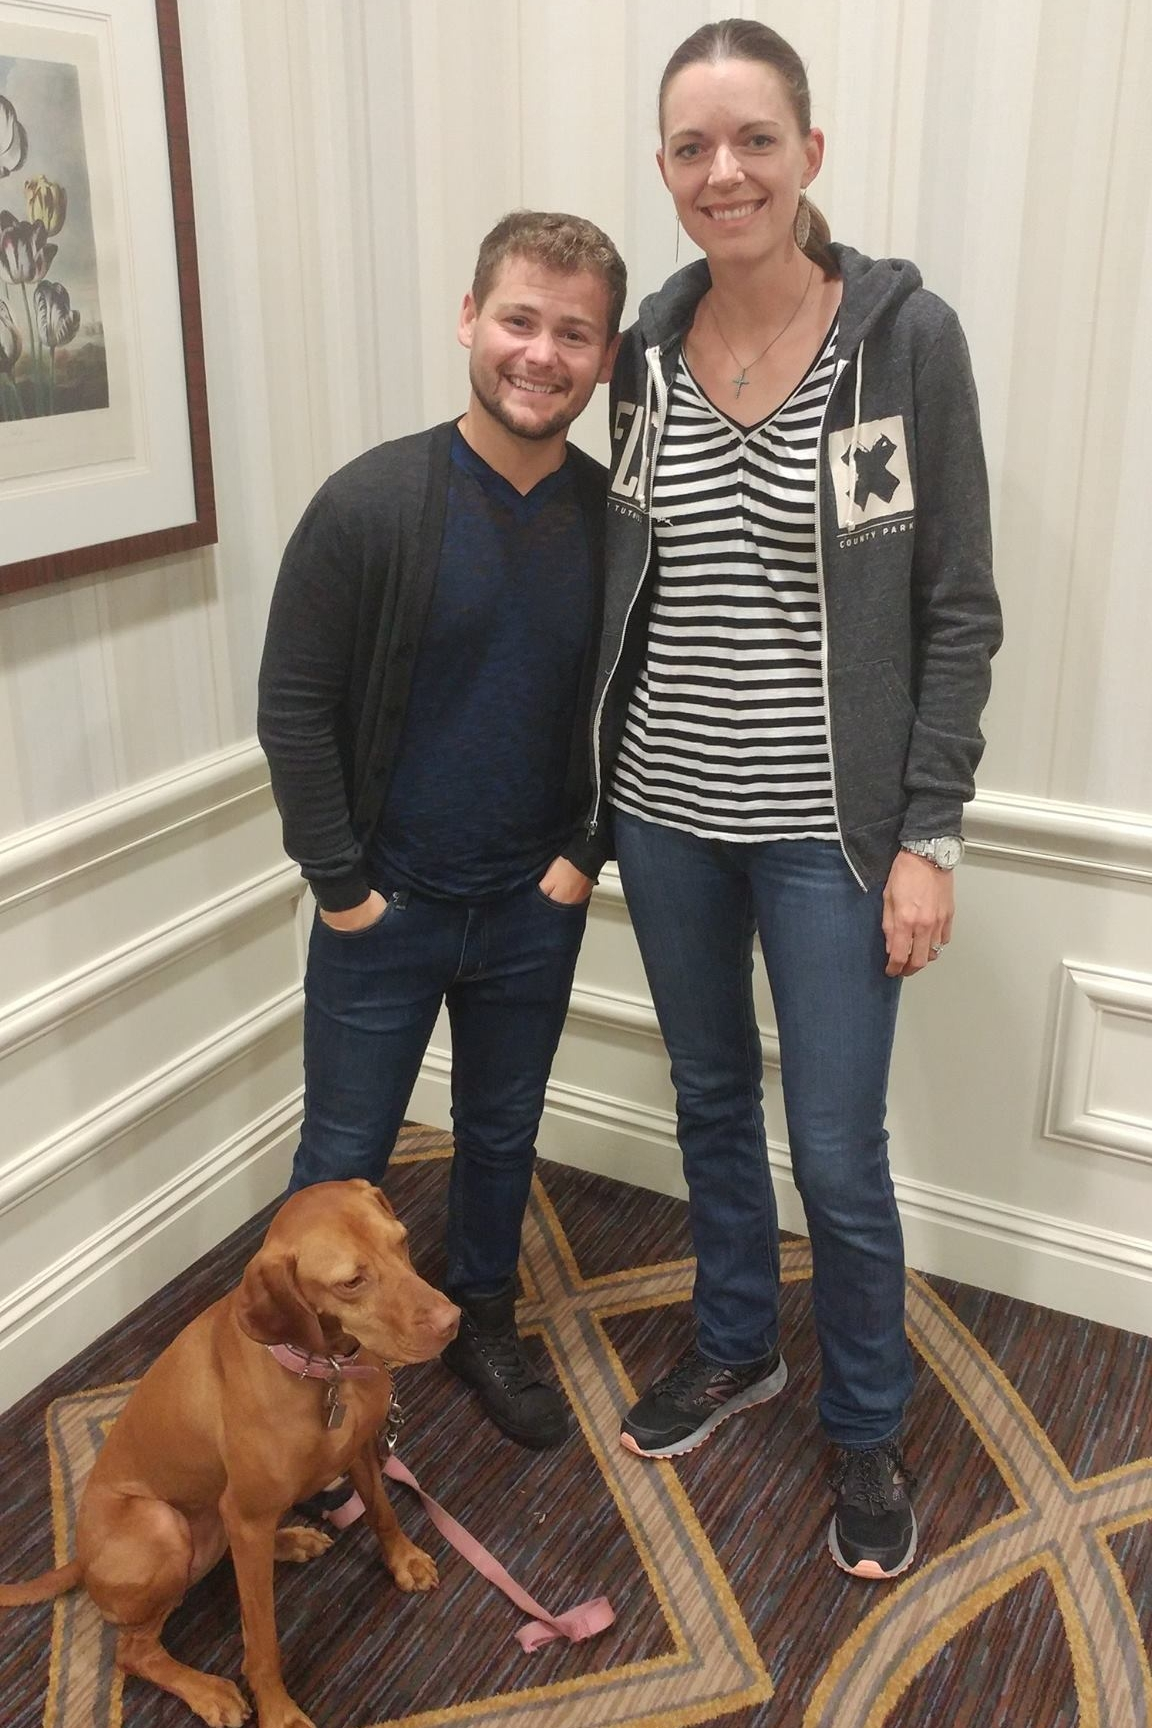 Crystal Blaker from Ruff House Dog Training & Behavior Modification meeting comedian Drew Lynch and his pup at the 2017 IACP Conference in St. Louis.